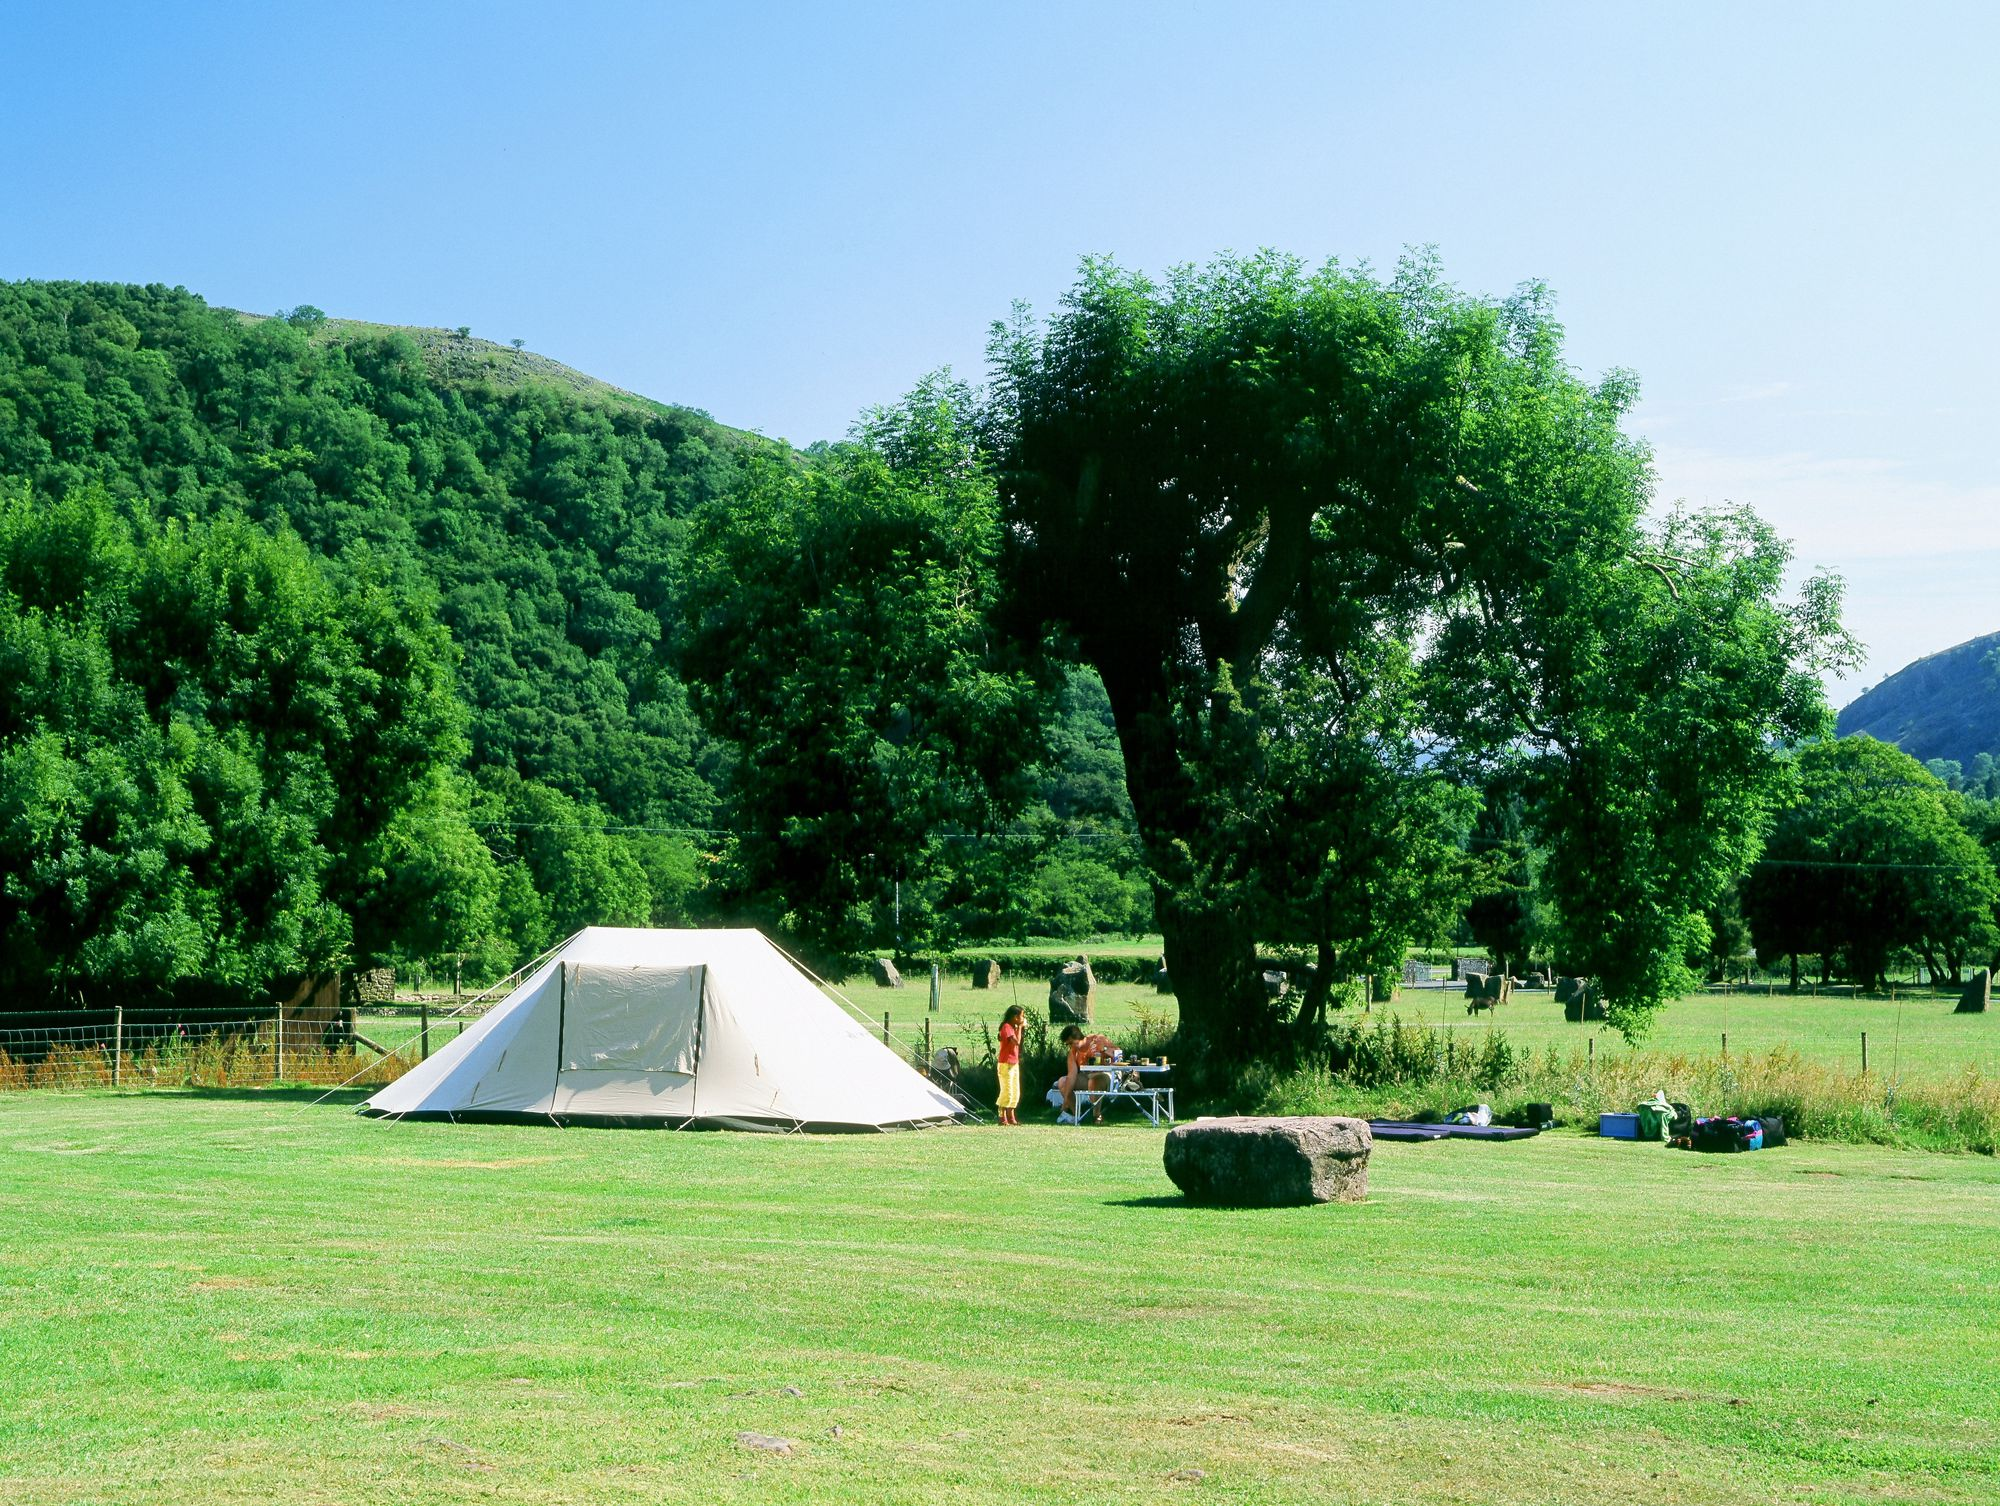 Campsites in the Brecon Beacons